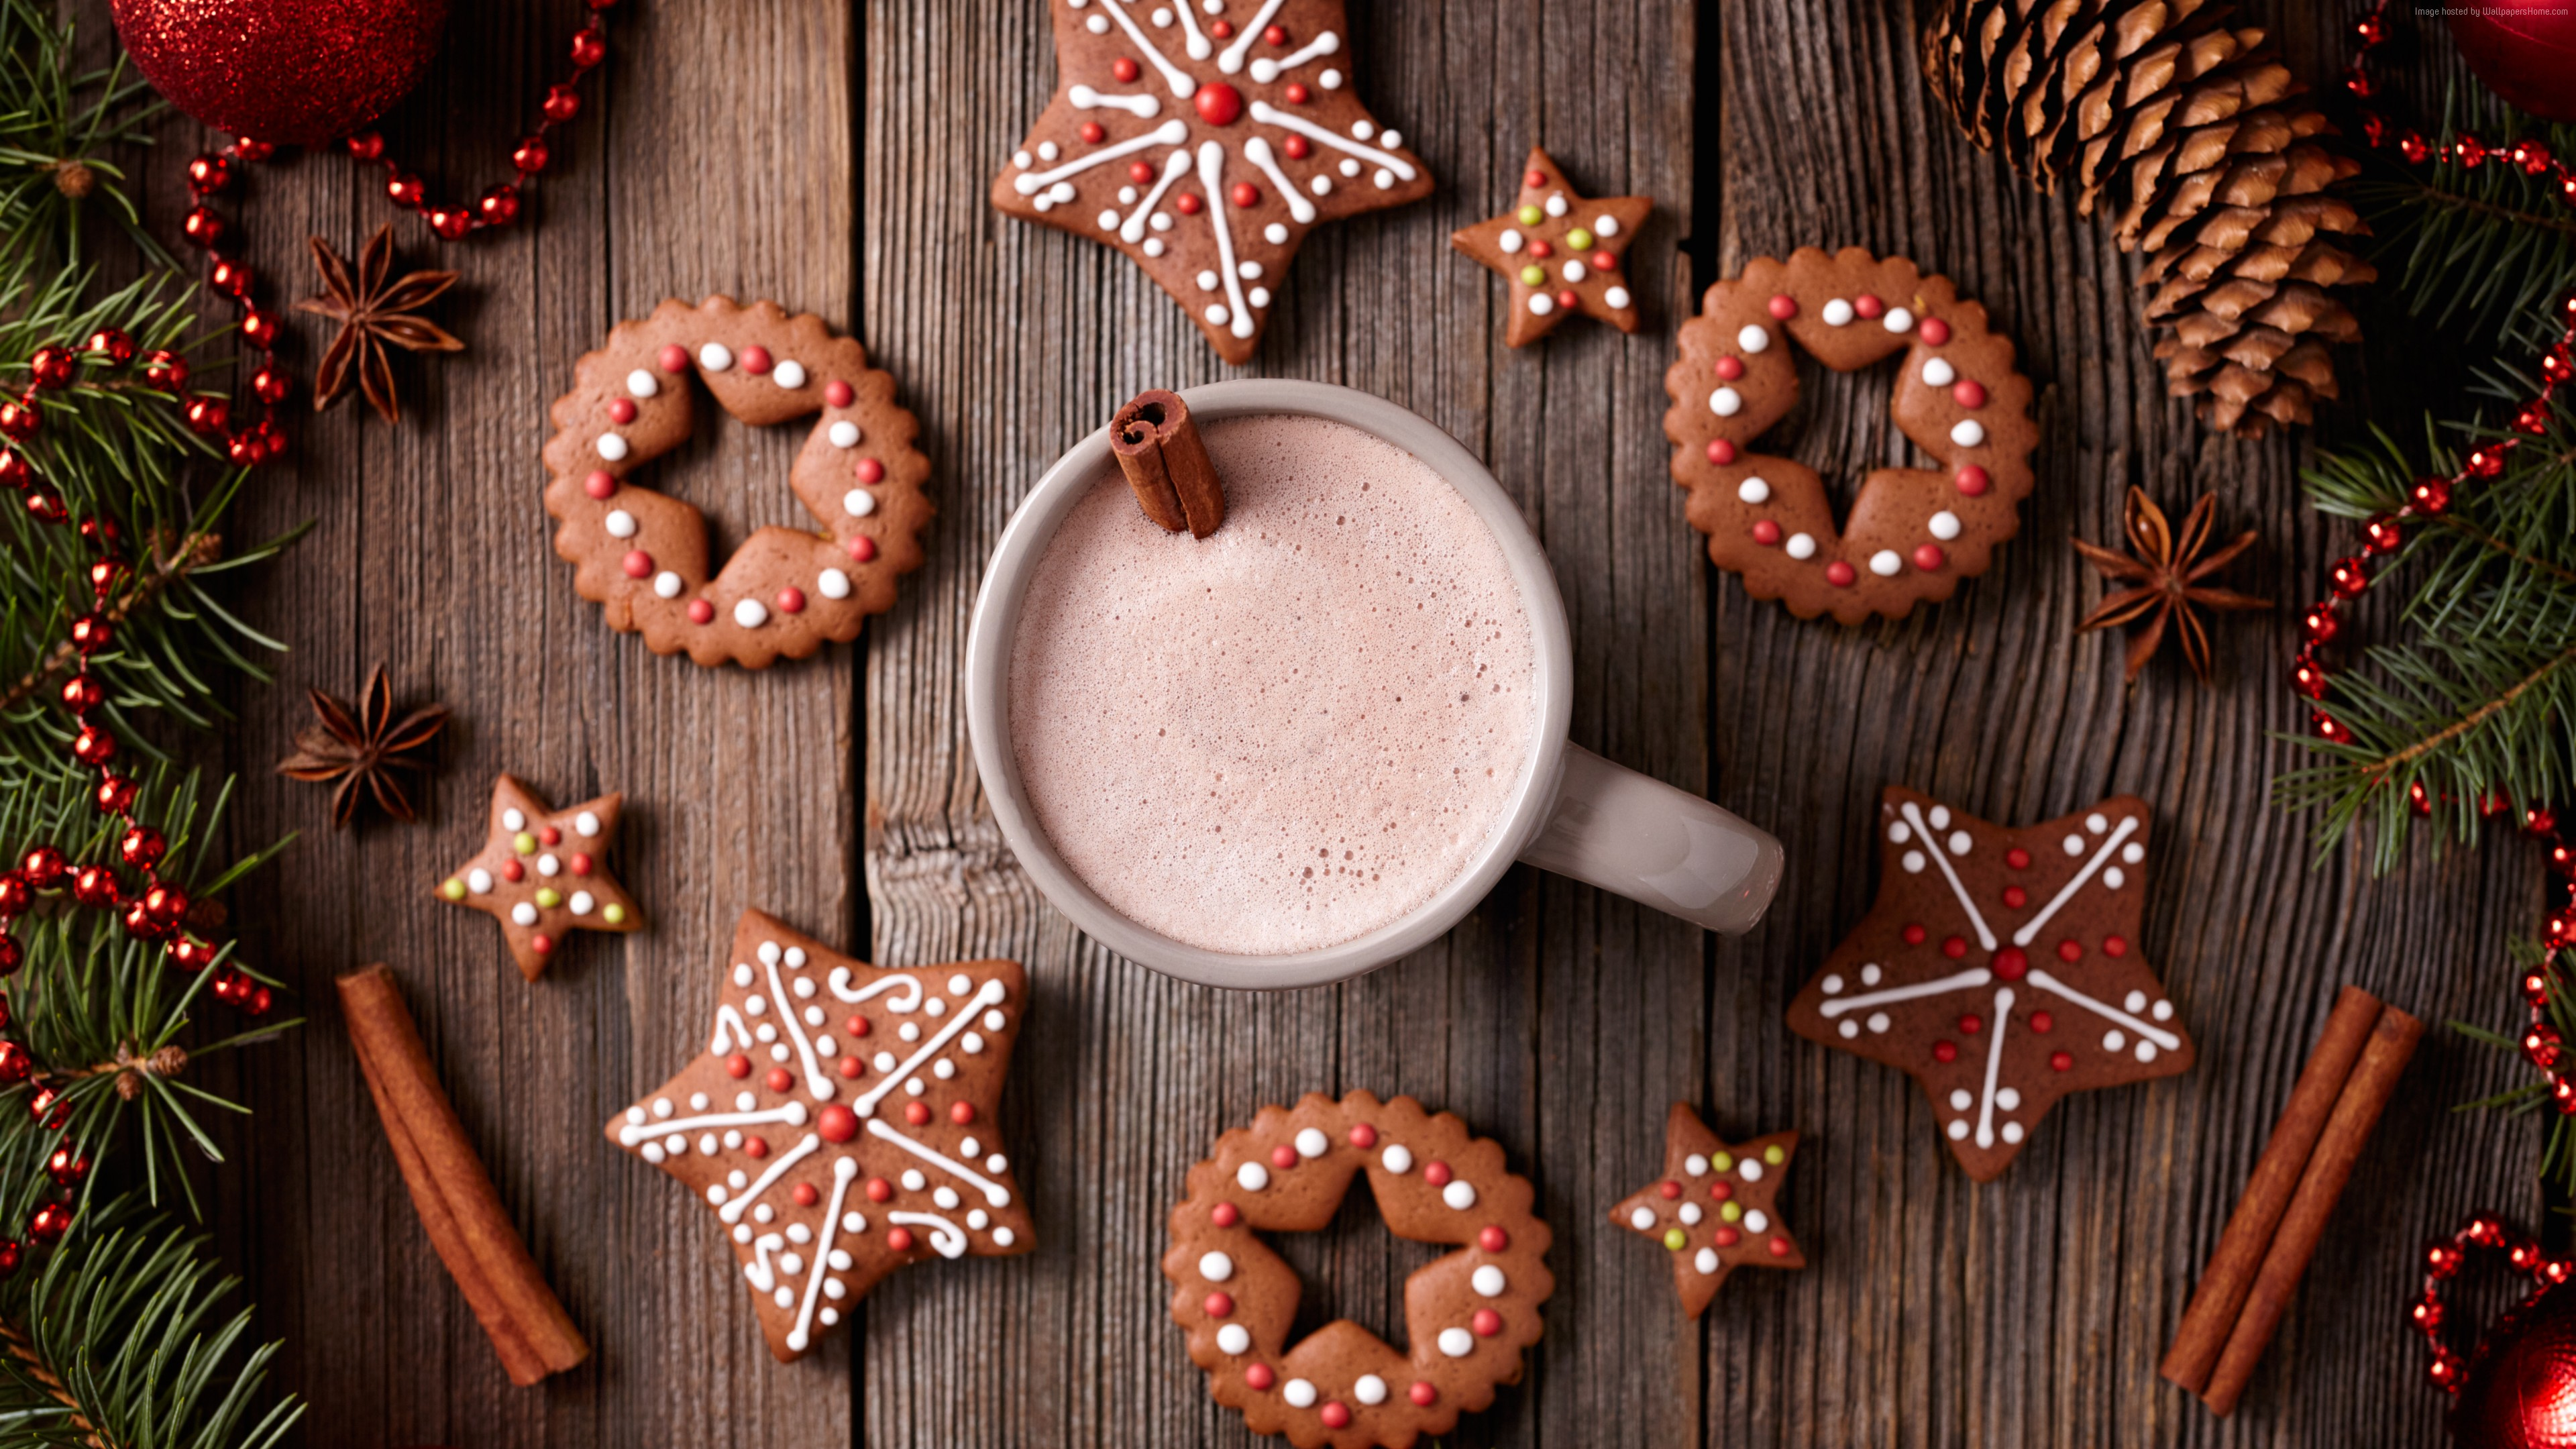 Wallpaper Christmas, New Year, cookies, cocoa, cinnamon, 5k, Holidays